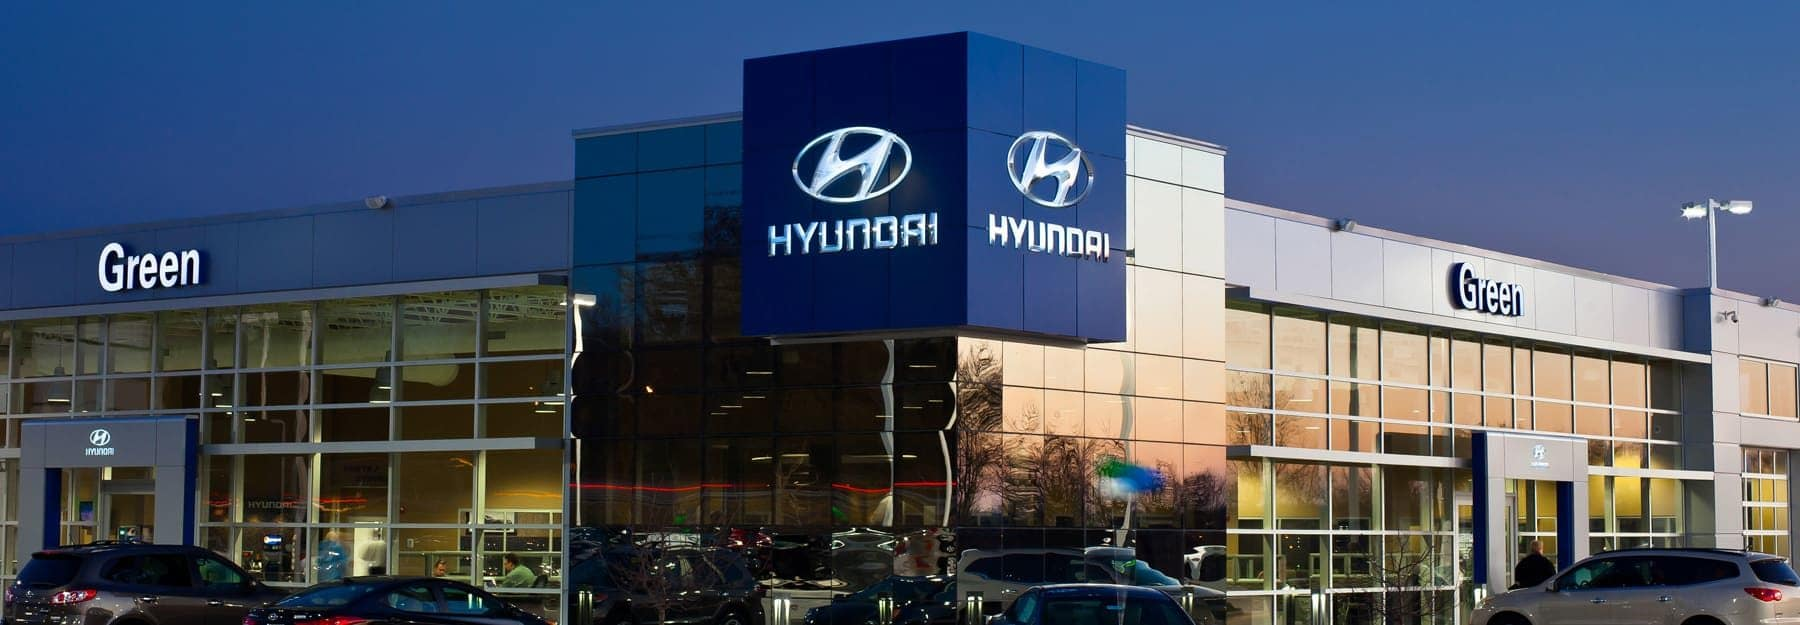 The exterior of the Green Family Hyundai dealership